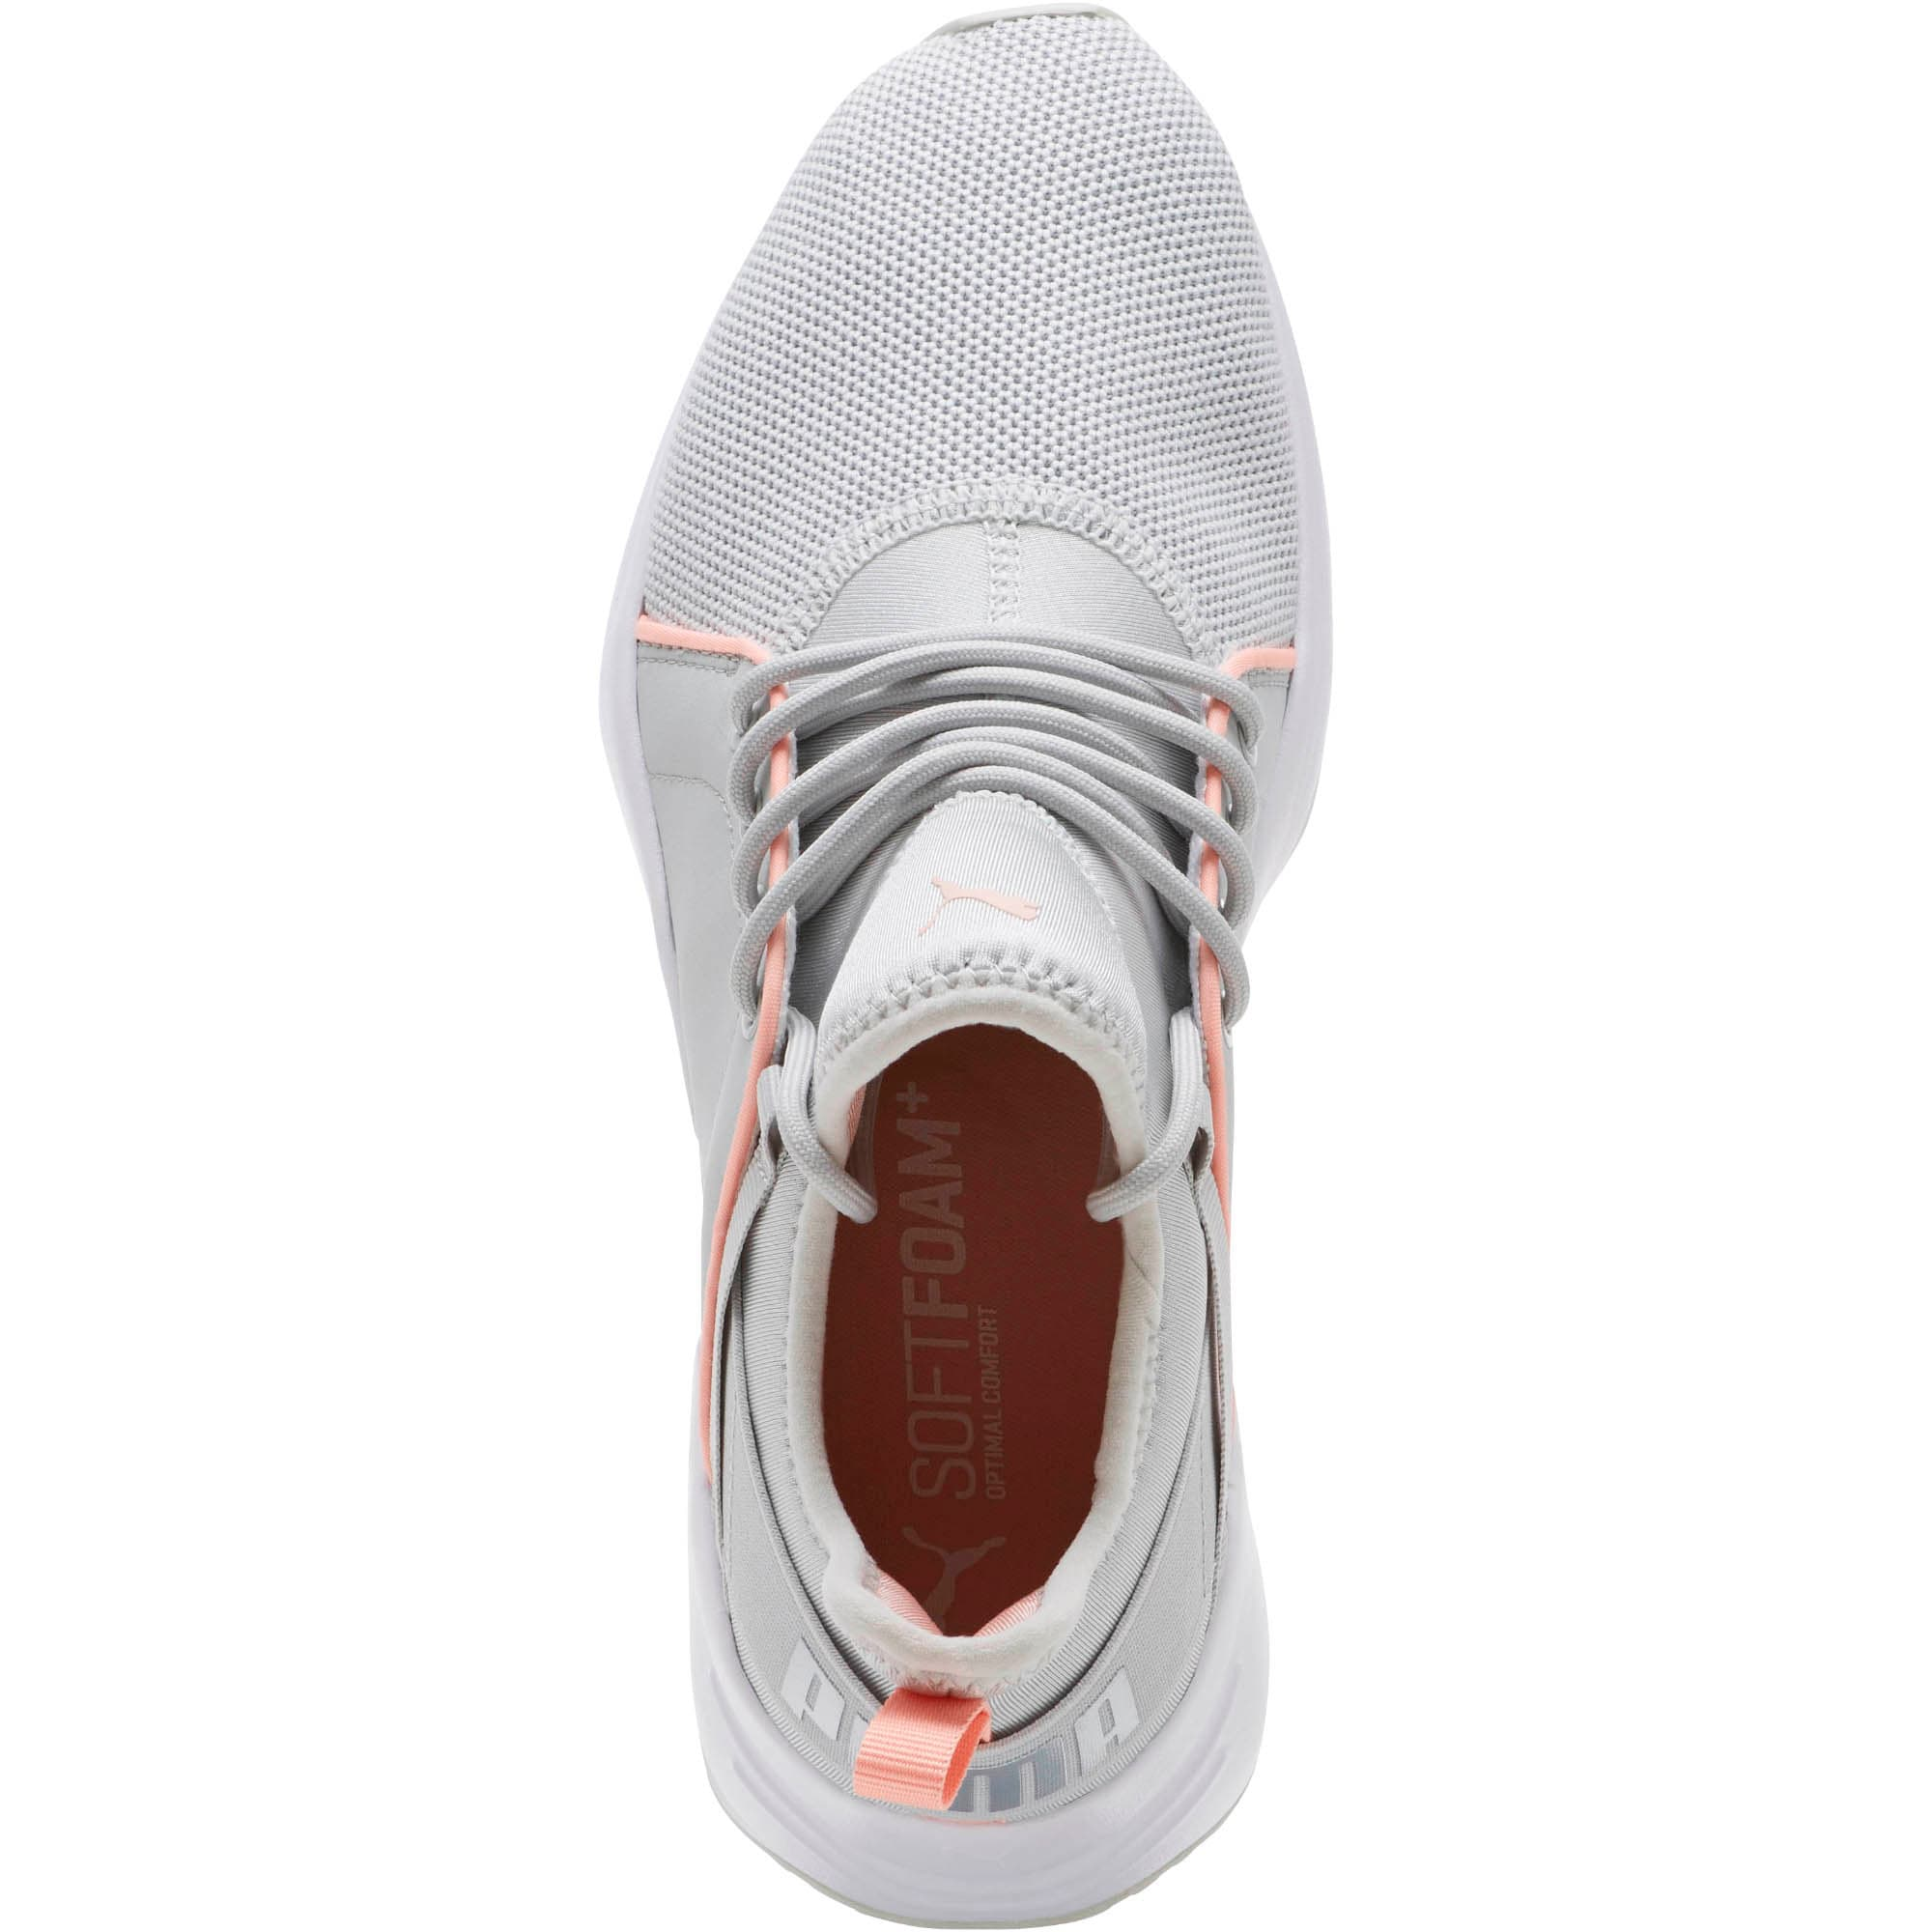 Sirena Women's Training Shoes, Glacier Gray-Peach Bud, large